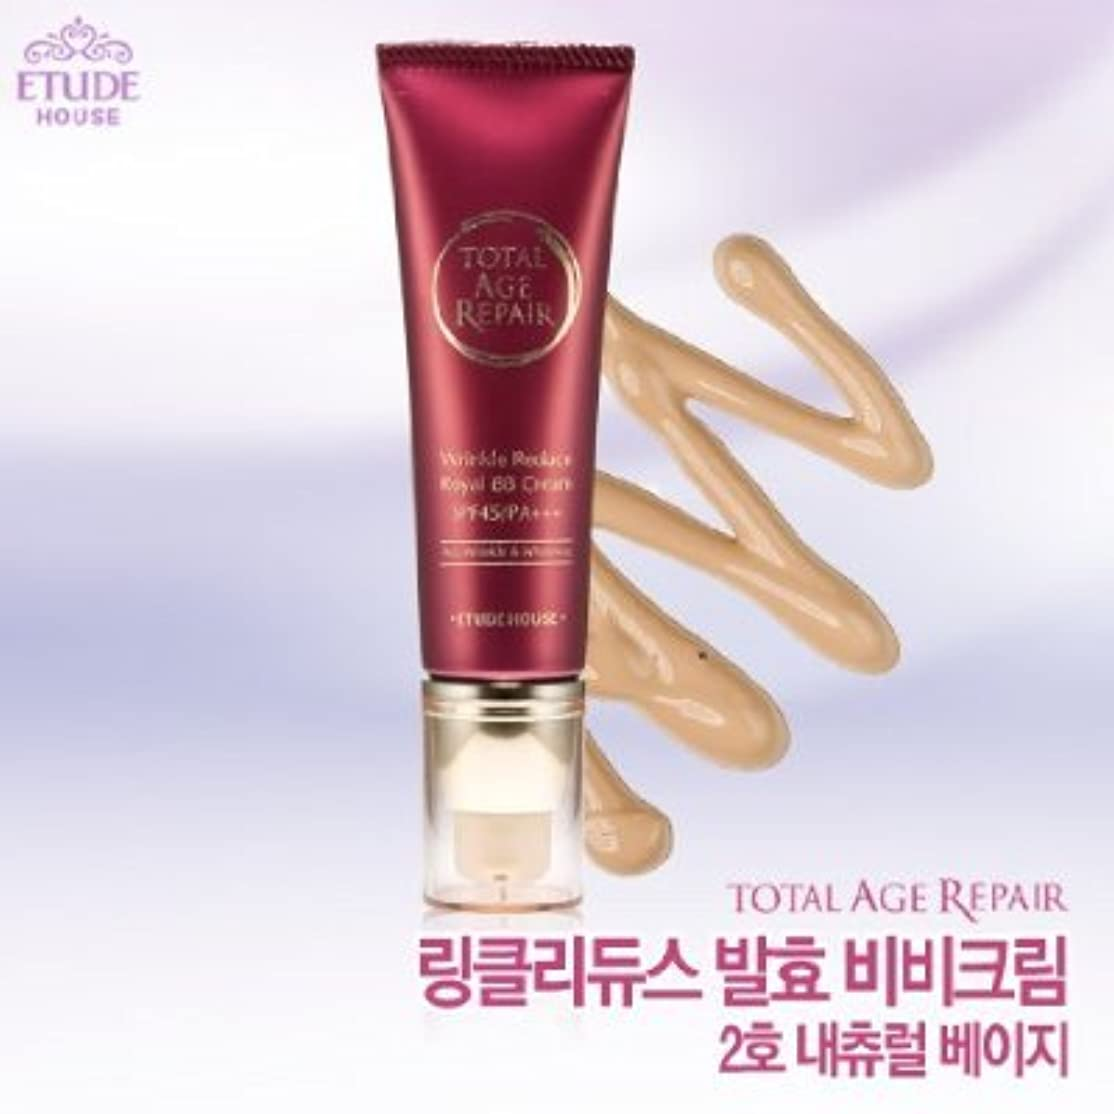 画家傷つきやすい開業医Etude House Total Age Repair Wrinkle Reduce Royal BB Cream (SPF45/PA++) #2 Natural Beige